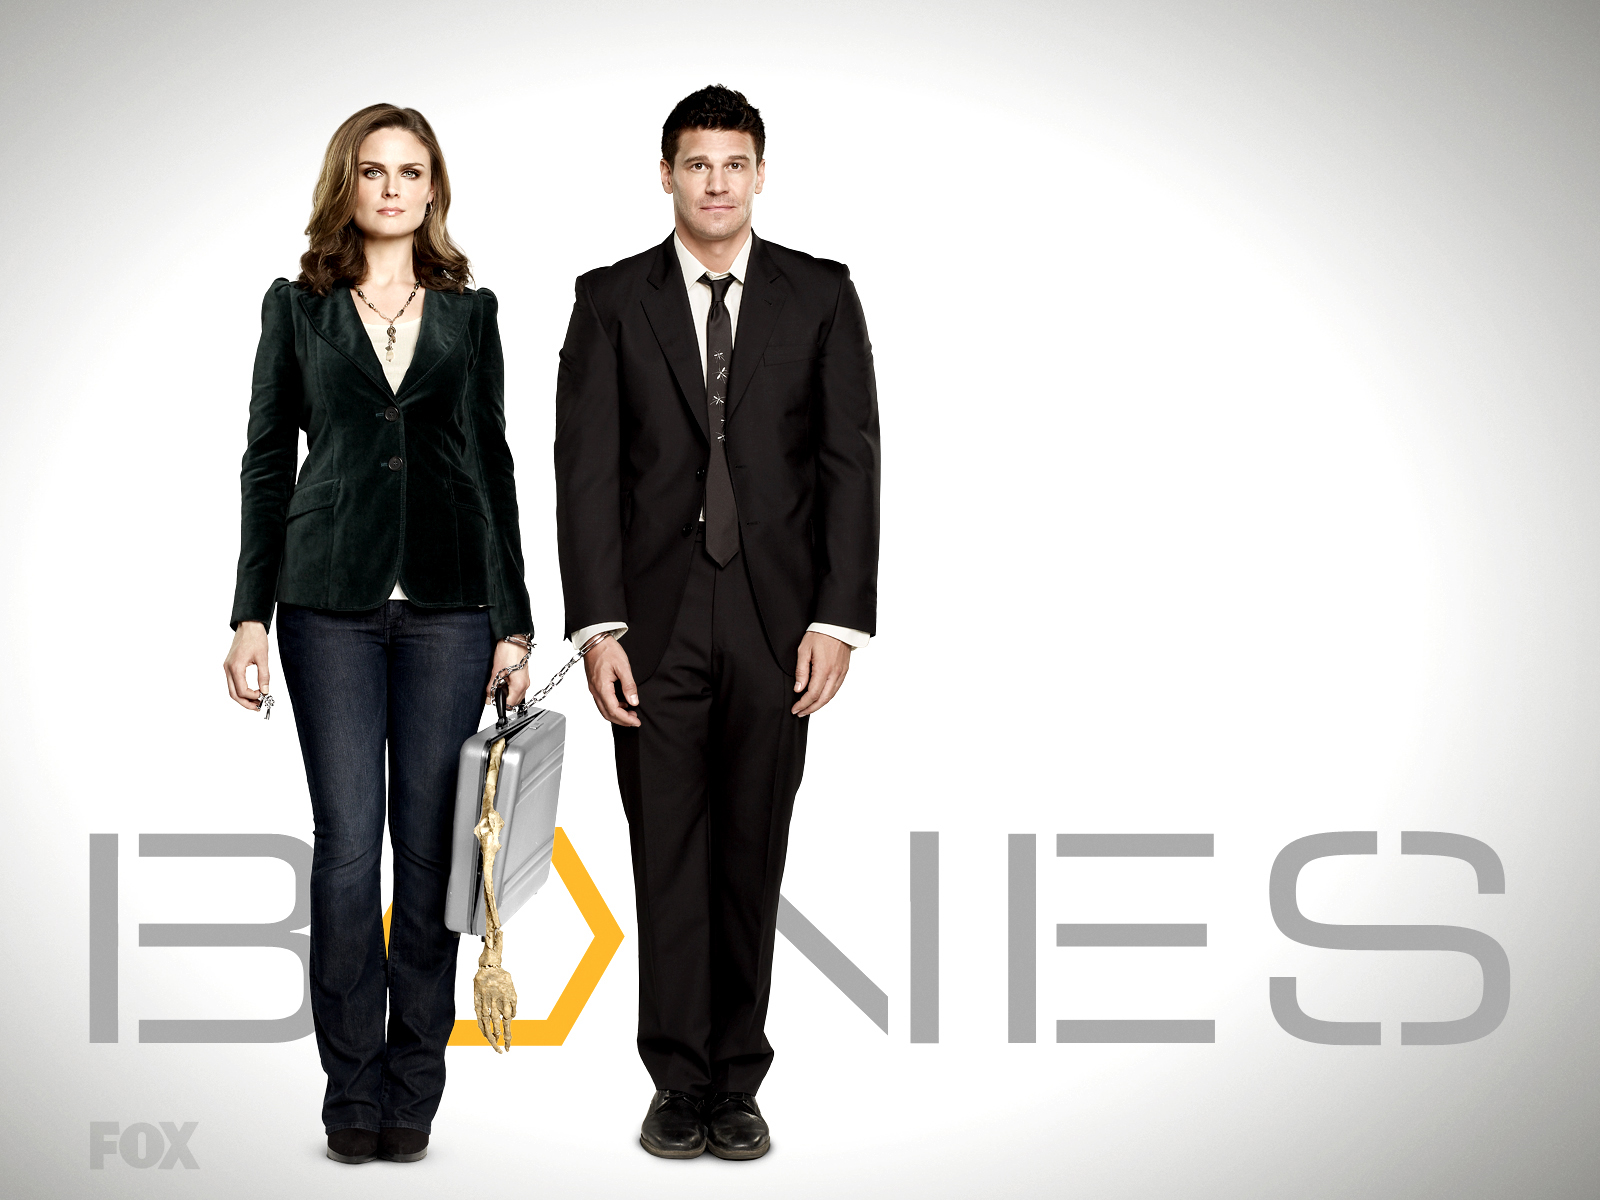 http://wallpapersboom.net/wp-content/uploads/2015/05/2224_bones_tv_series.jpg Crossbones Tv Show